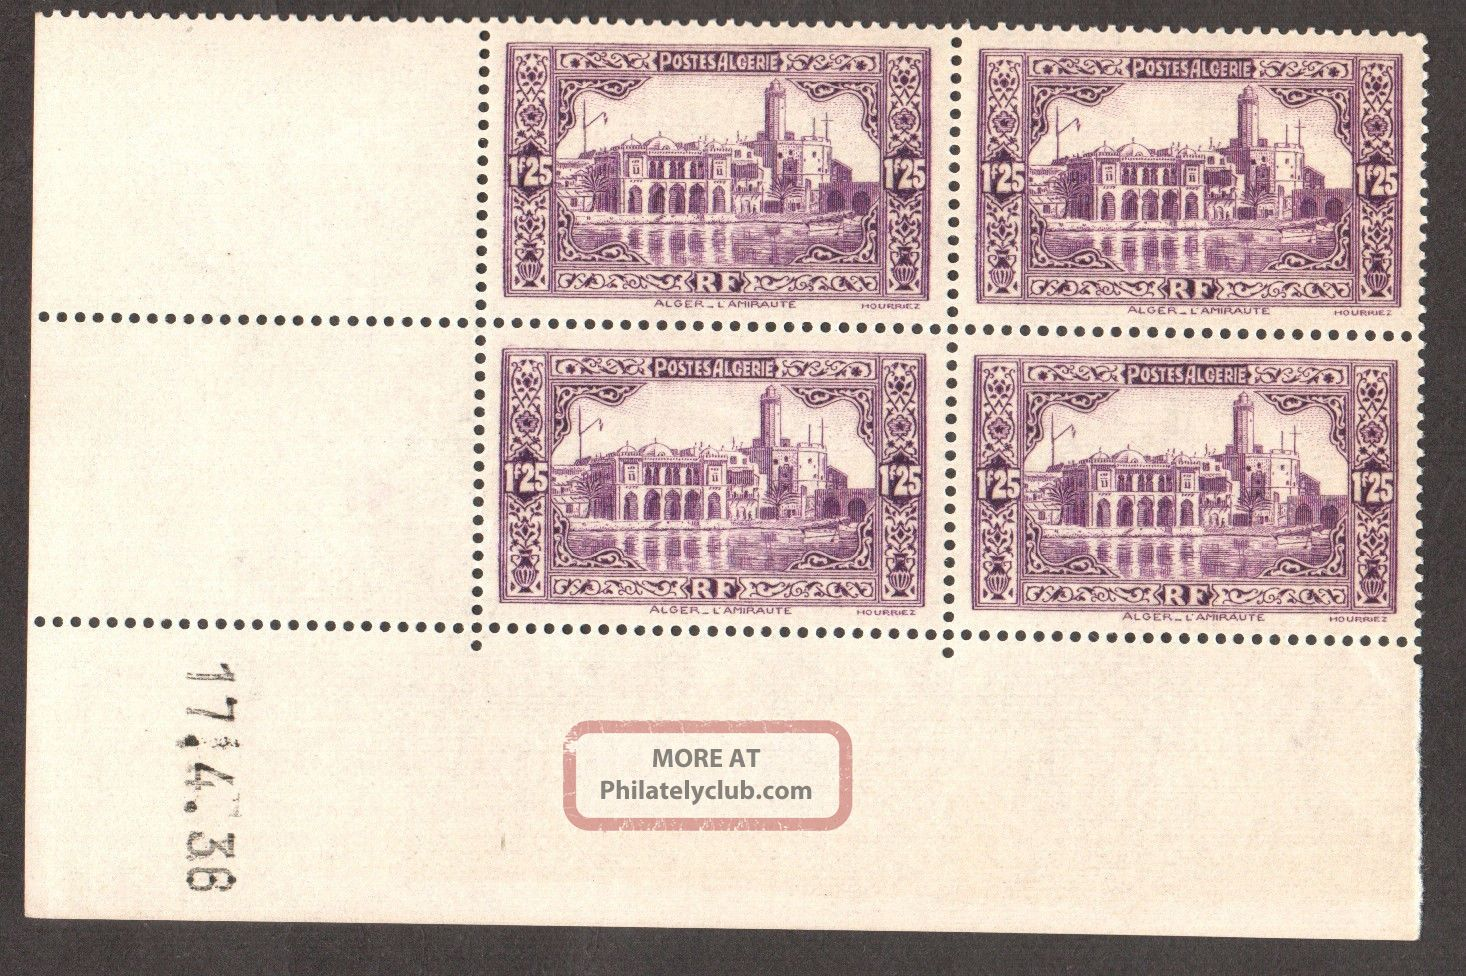 Algeria 1936/41 - Admiralty Building Algiers,  Scott 97 - Dated Block Of 04 Africa photo